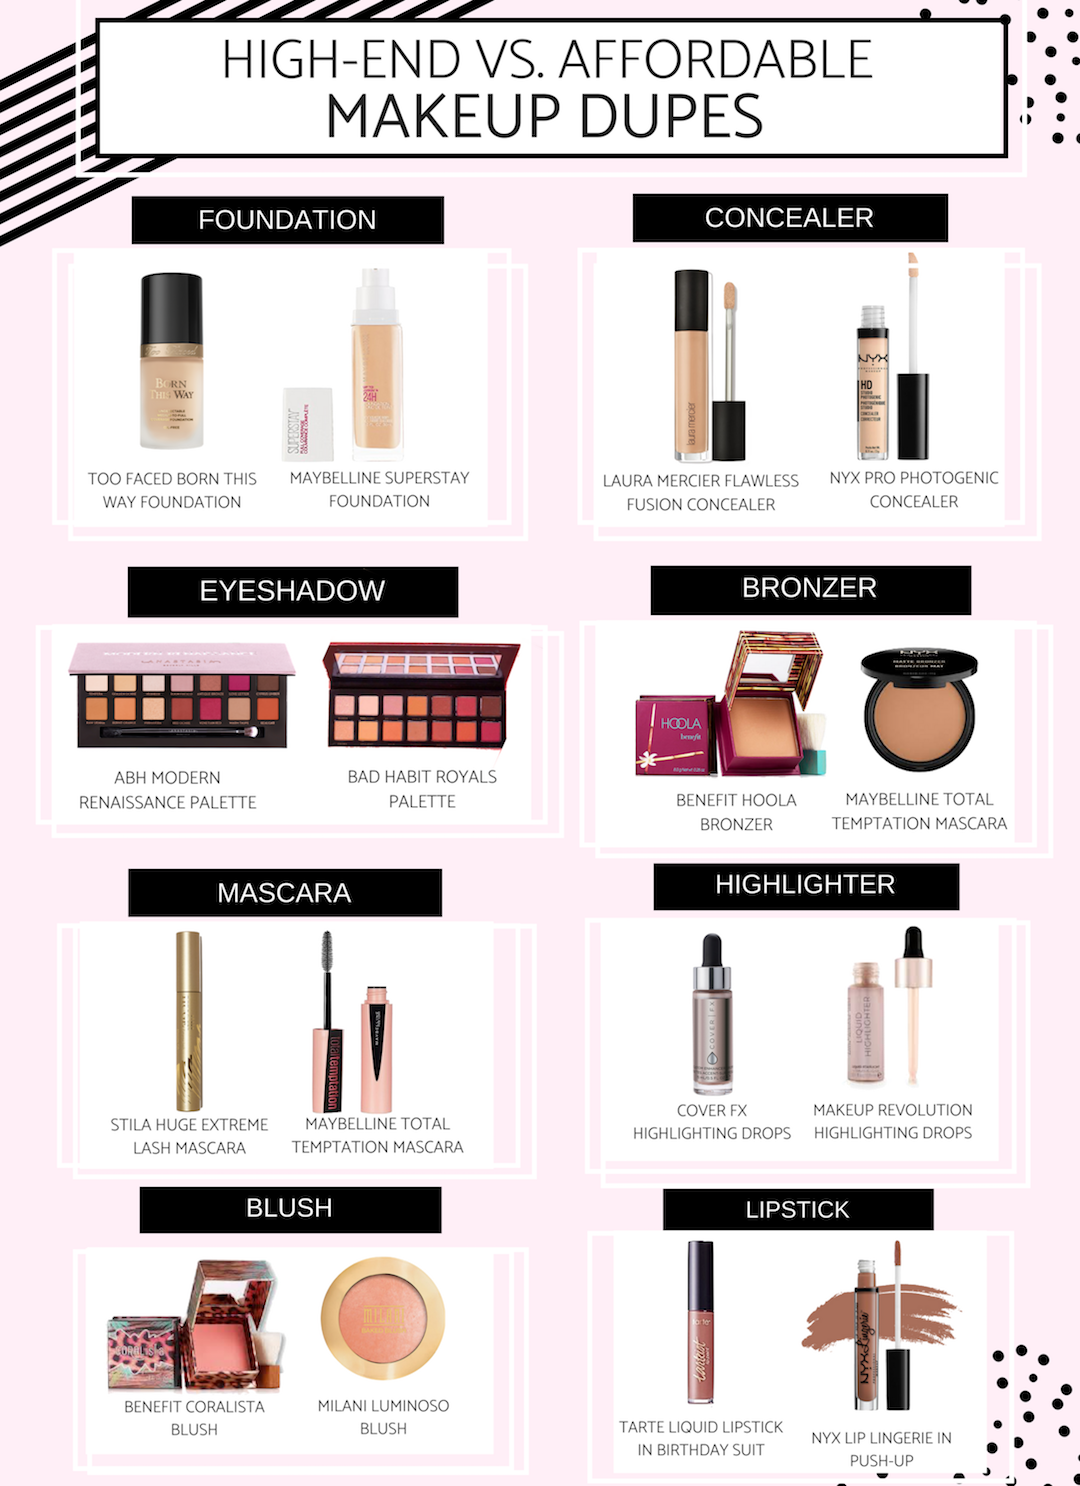 Makeup Dupes Drugstore Vs. HighEnd The Urban Umbrella